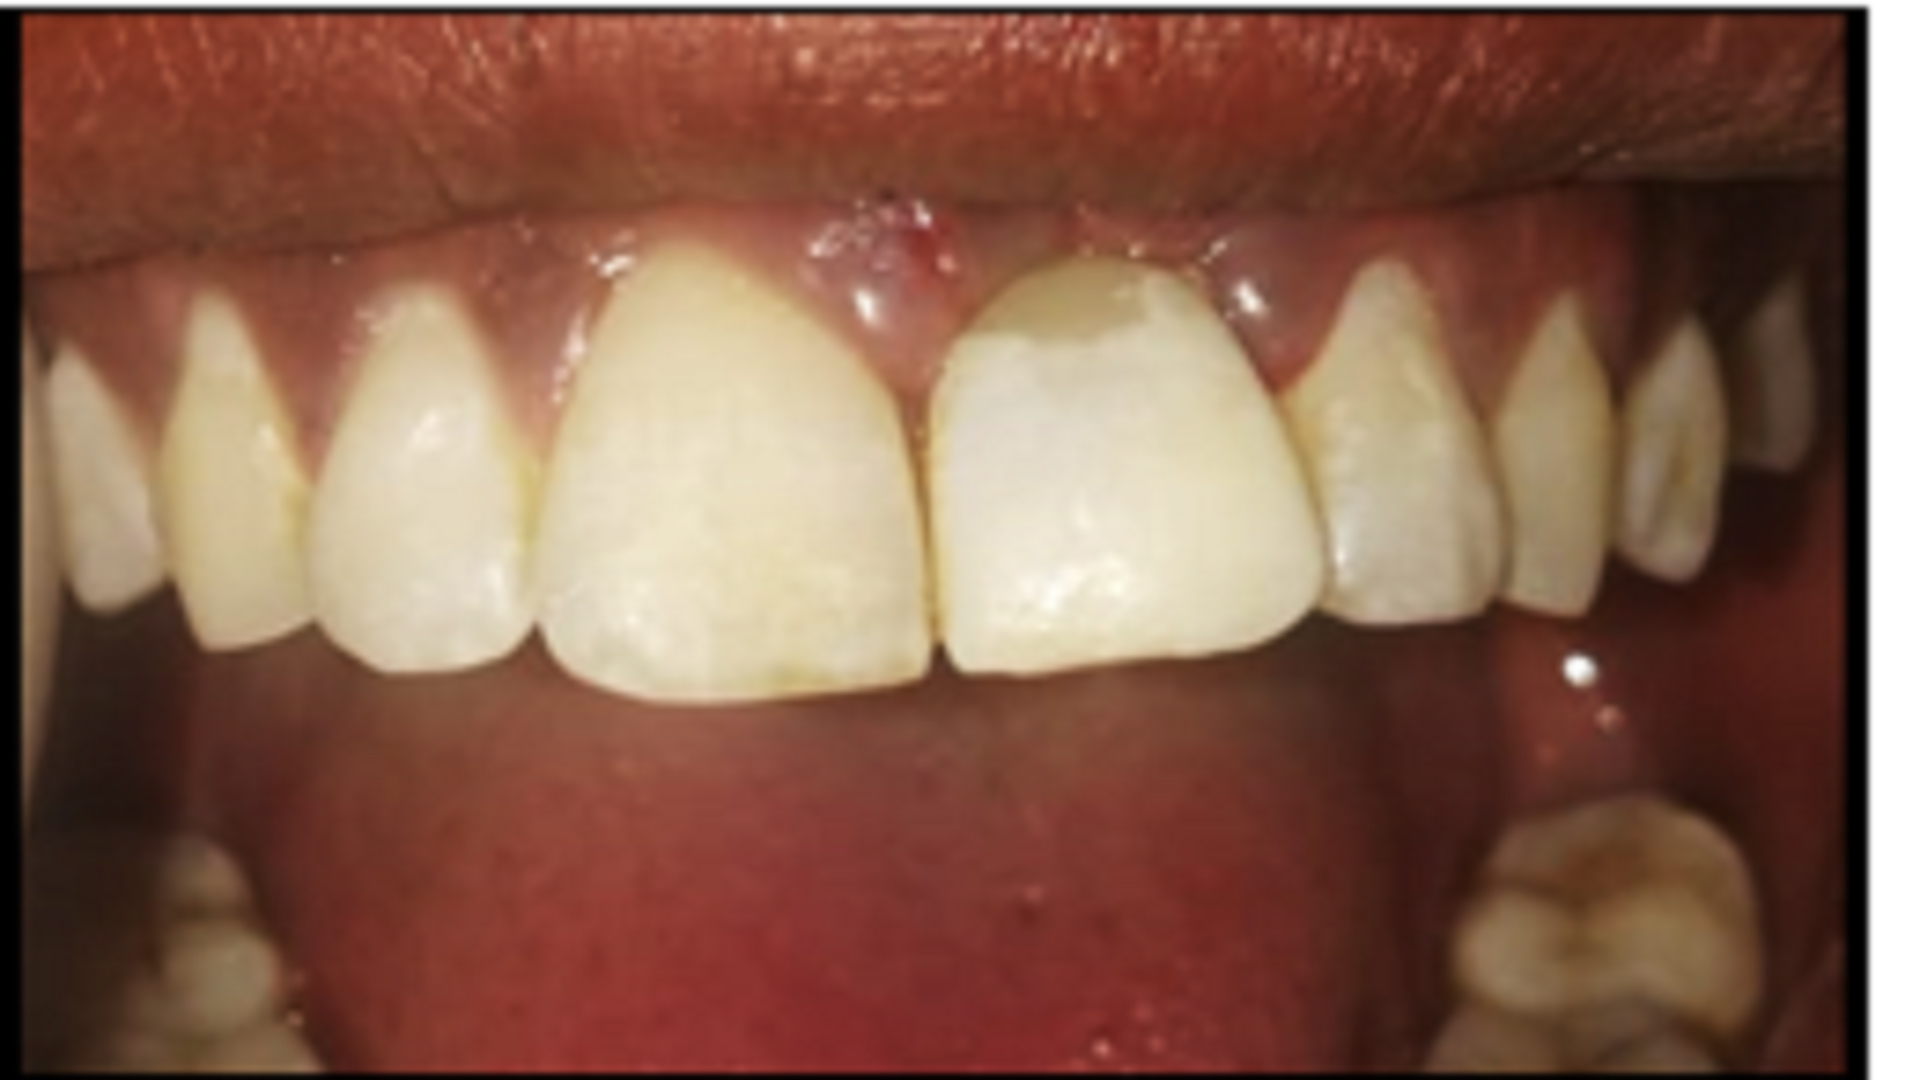 Can Supportive Periodontal Therapy Control The Spread Of Covid-19?